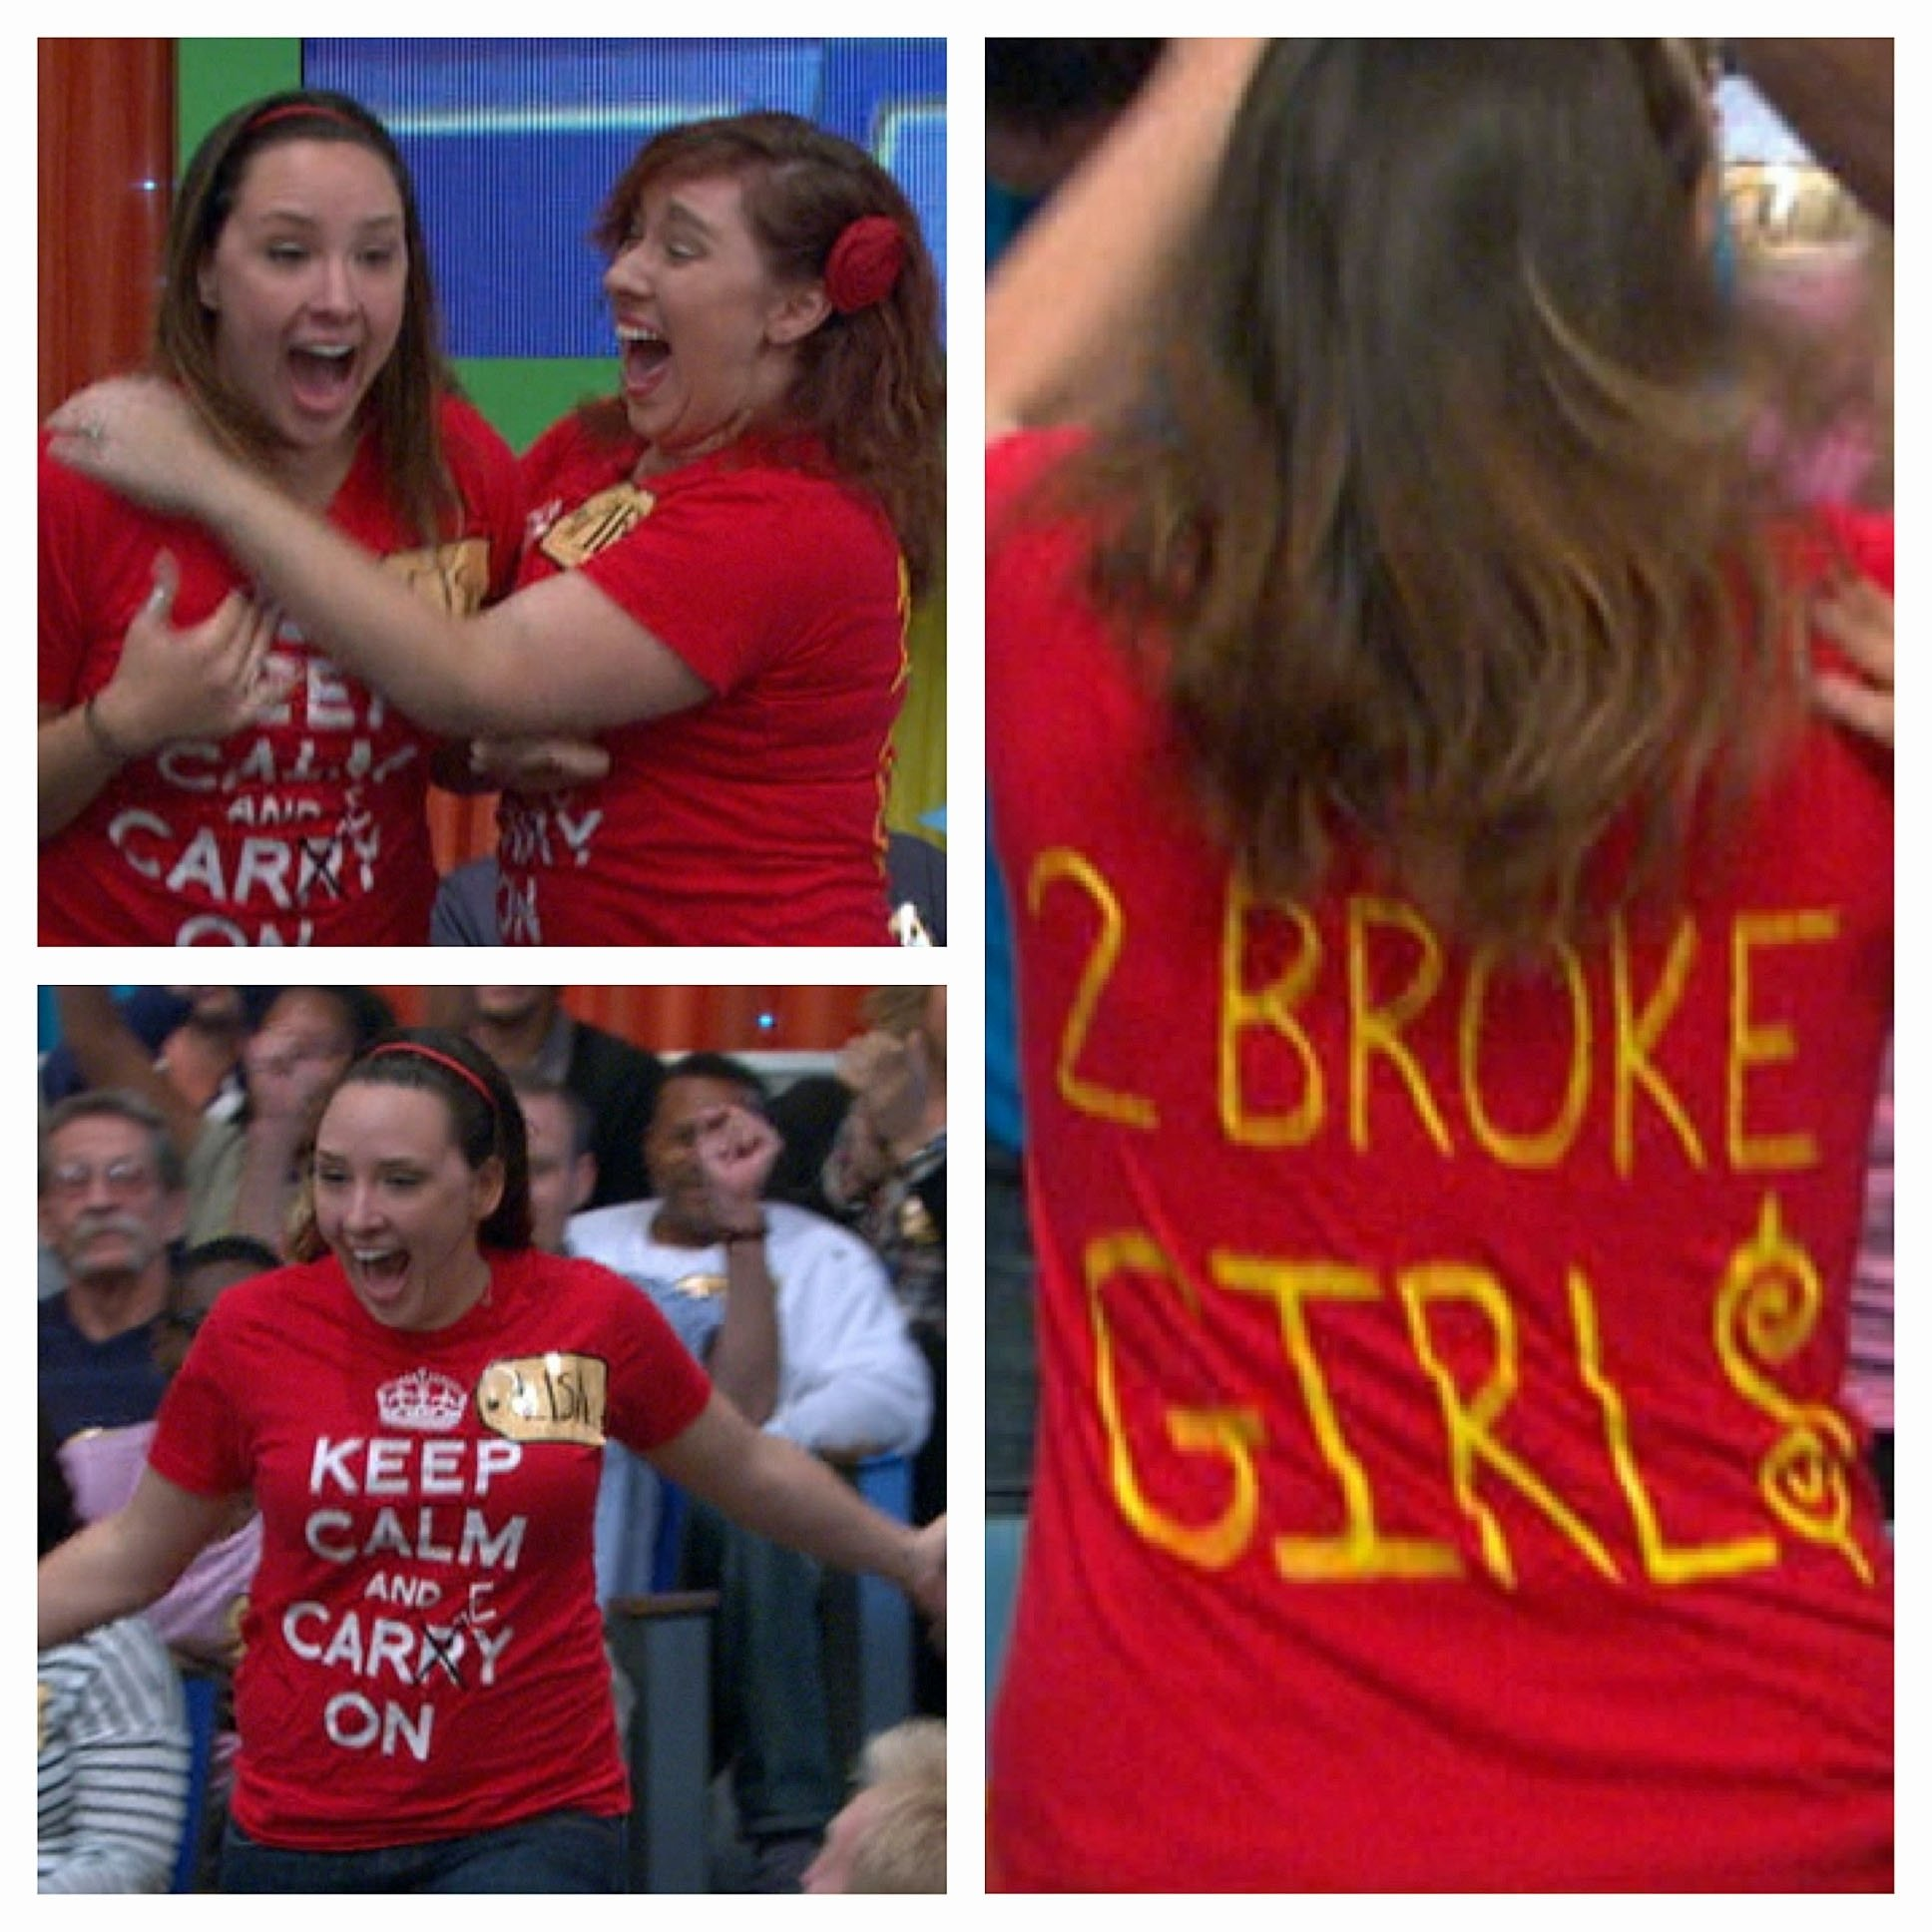 10 Amazing The Price Is Right Shirt Ideas tweets and sneak peeks page 43 the price is right photos cbs